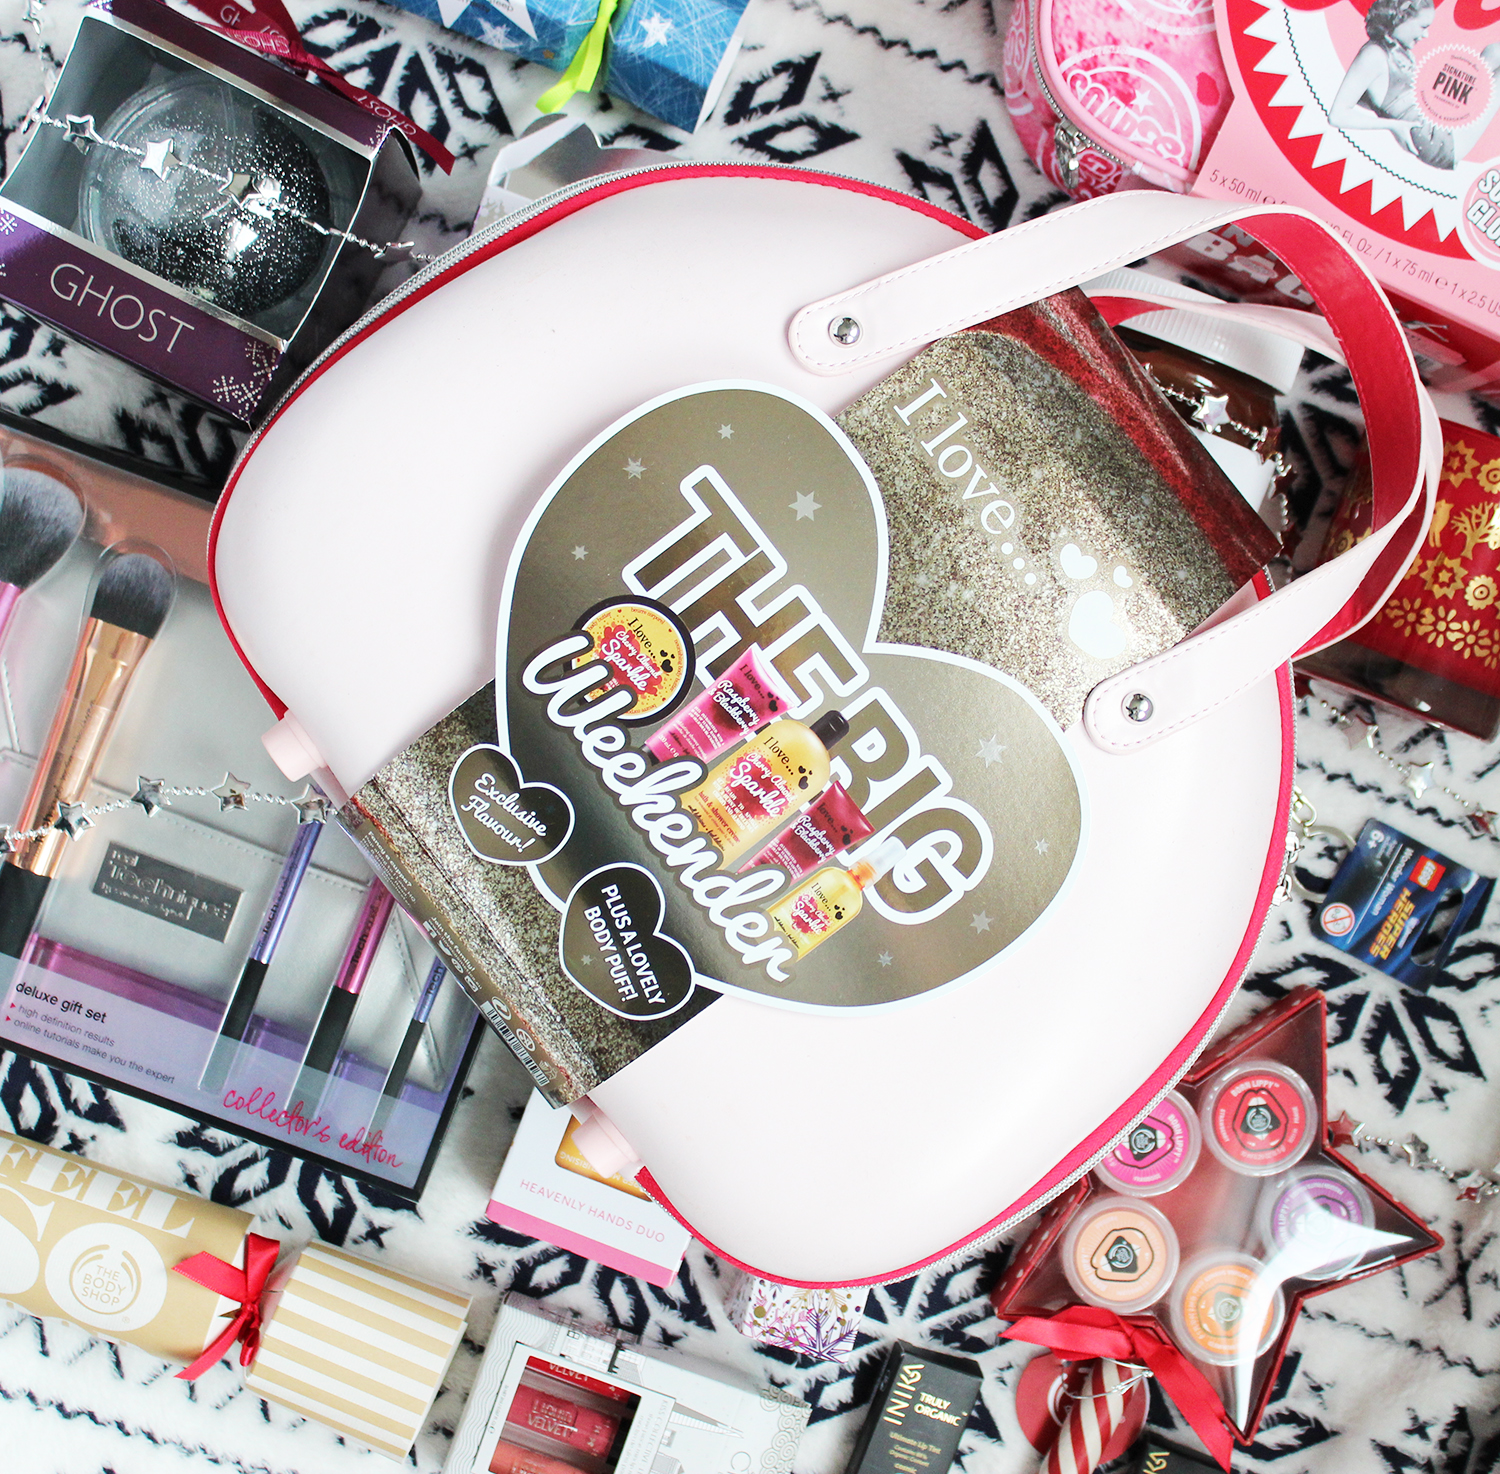 Affordable beauty gift ideas for her